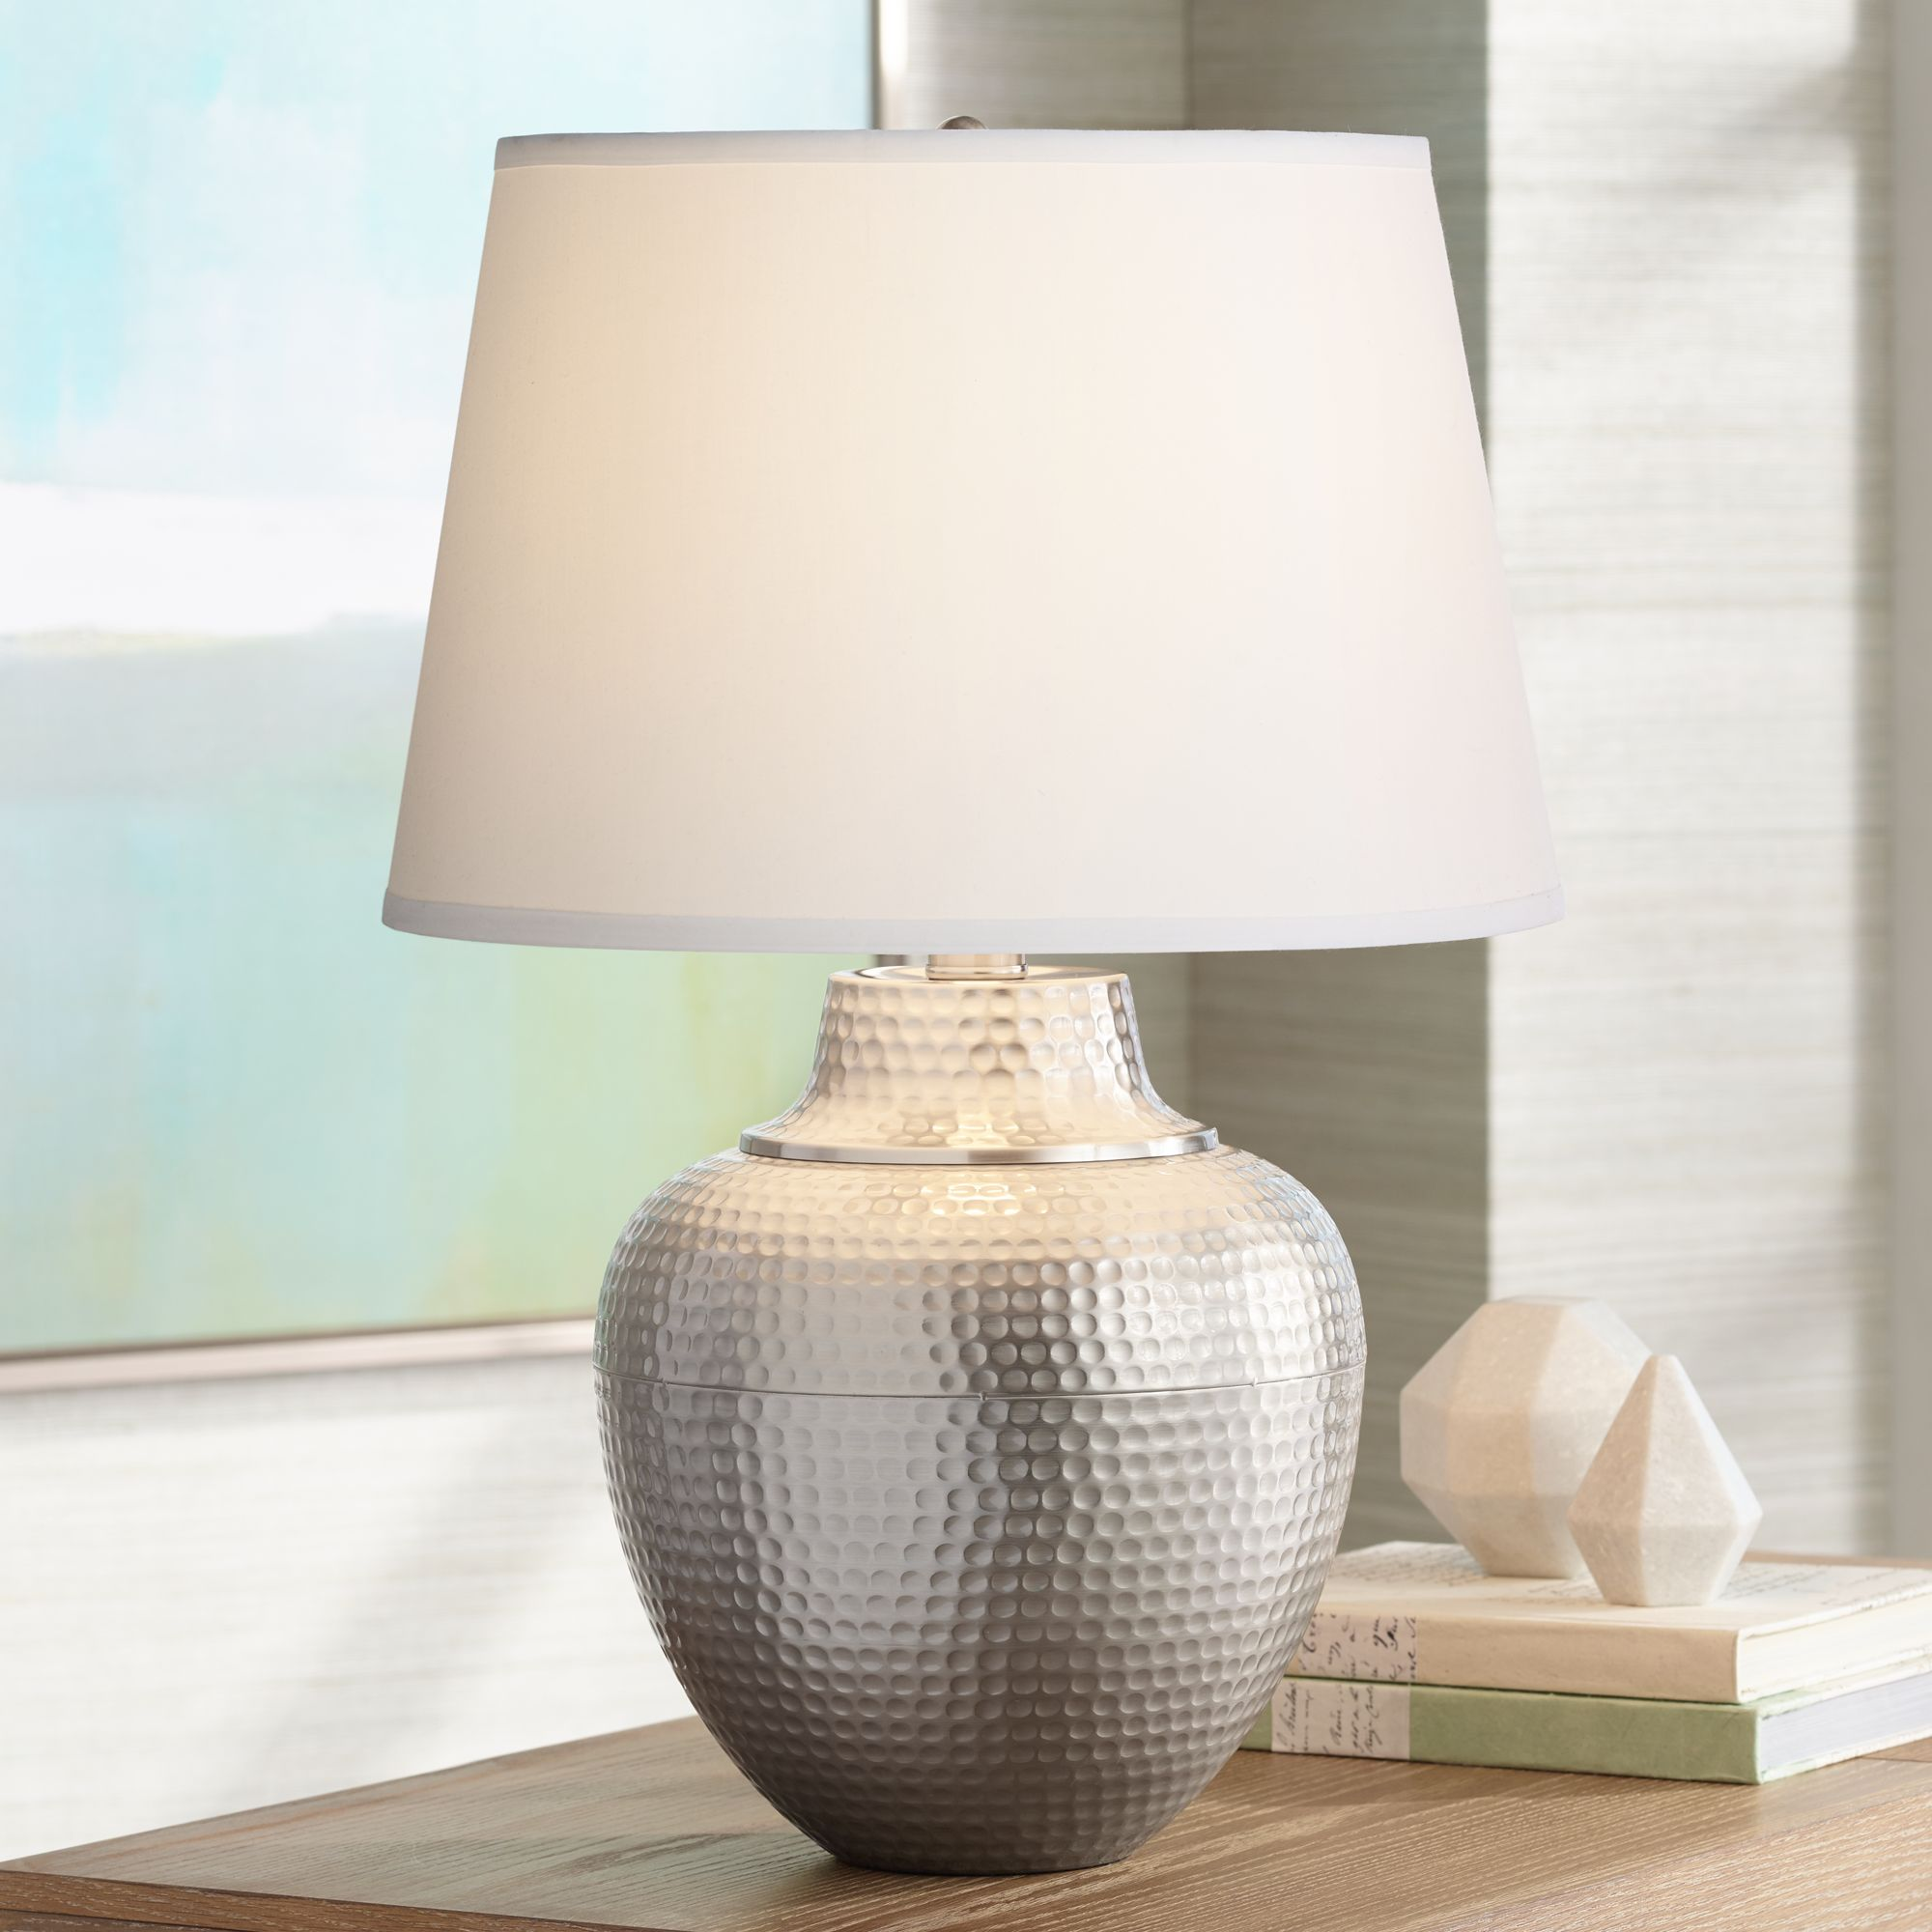 Genial Brighton Hammered Pot Brushed Nickel Table Lamp